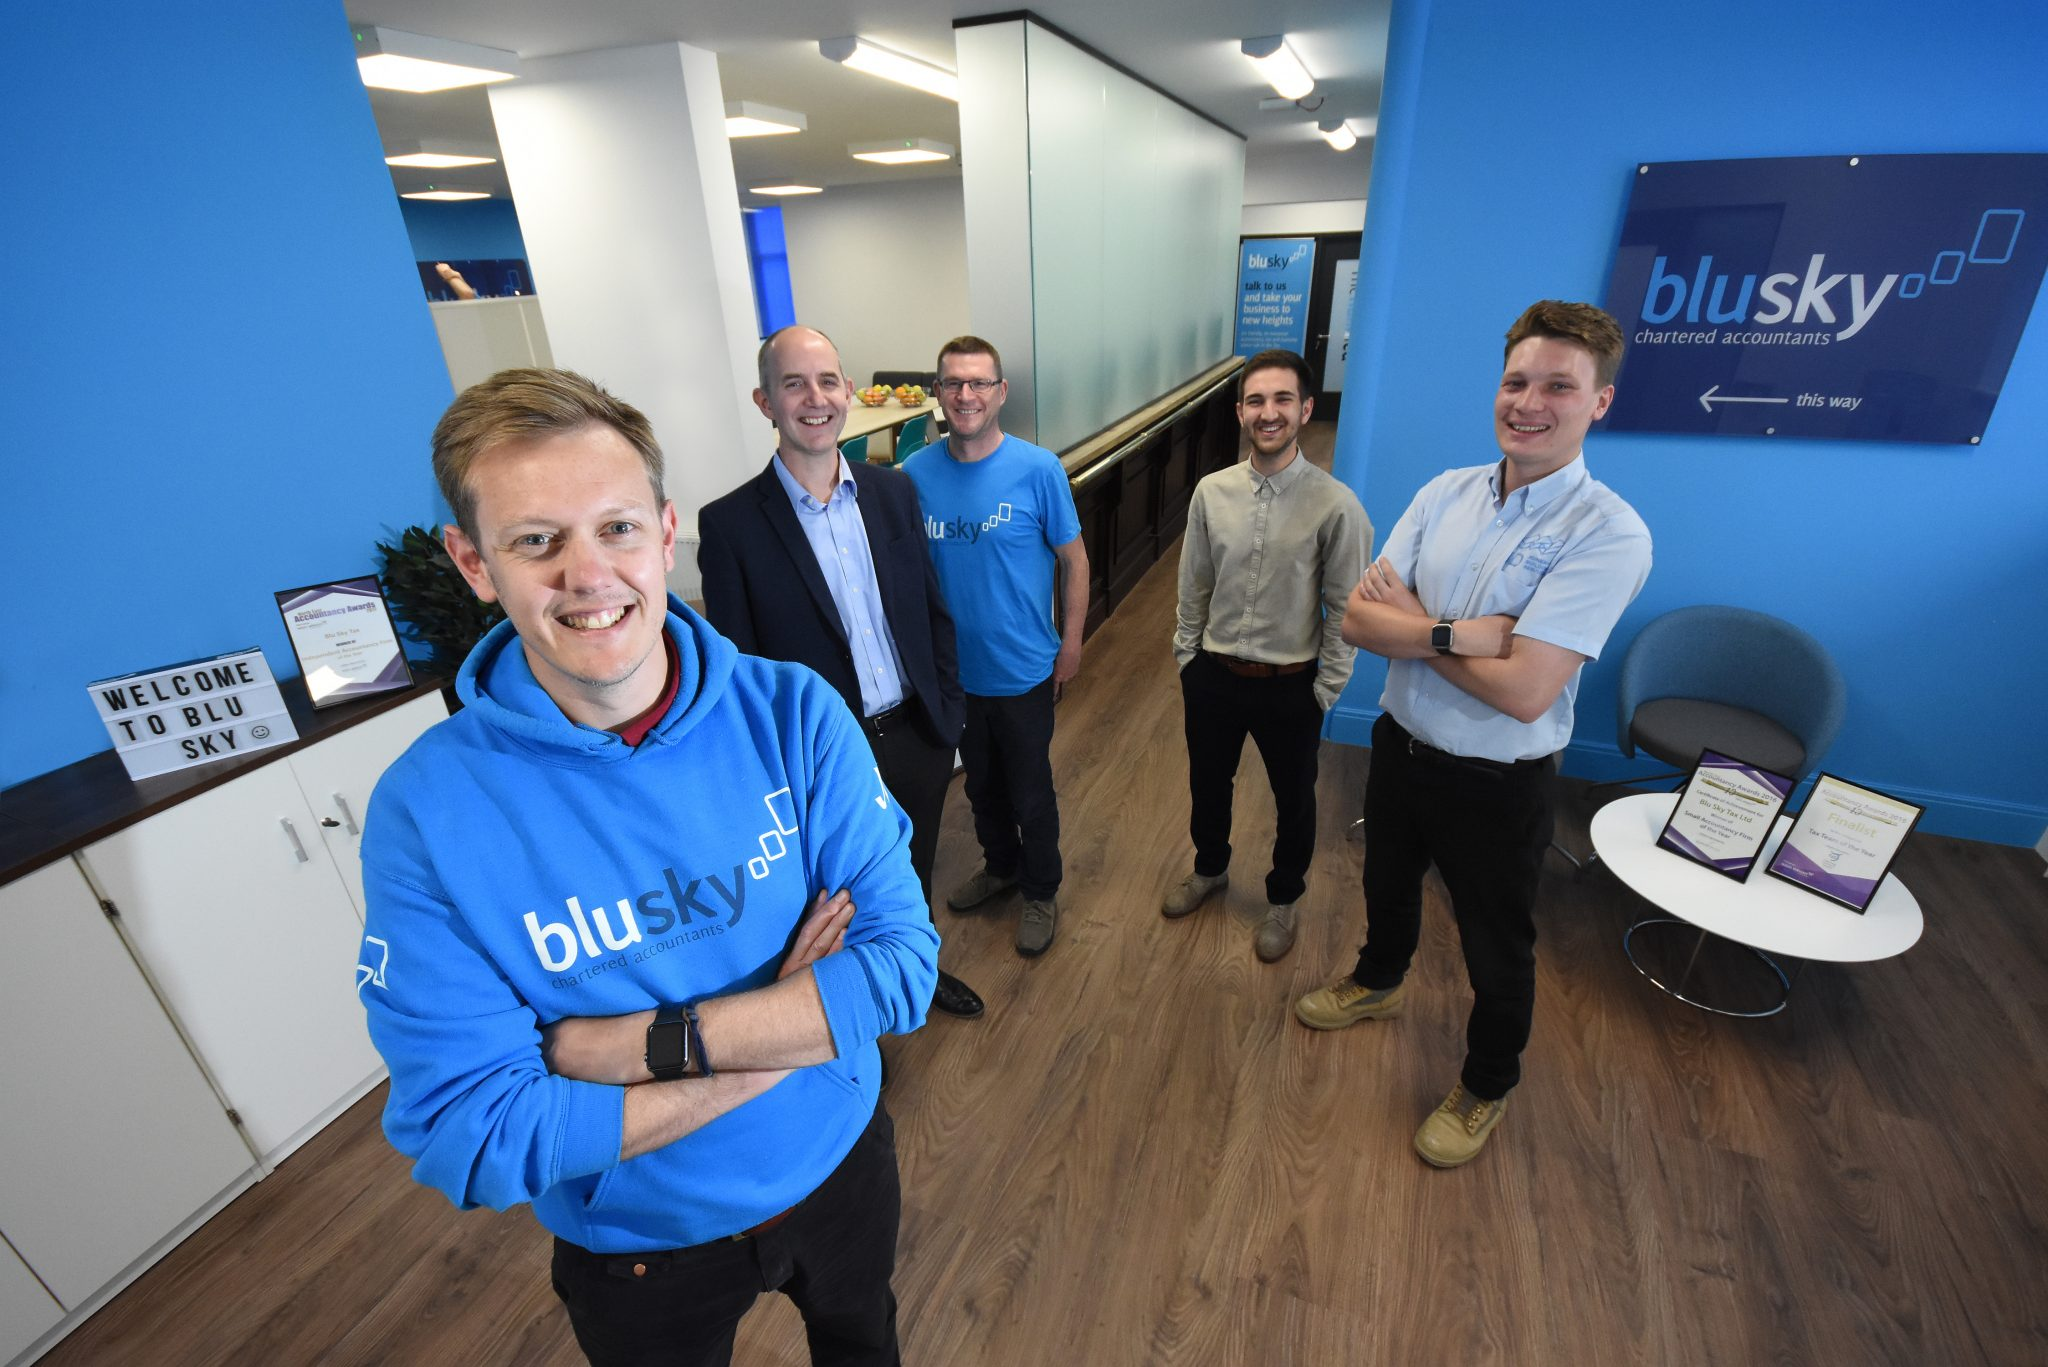 Blu Sky team expands with new hires and internal promotions